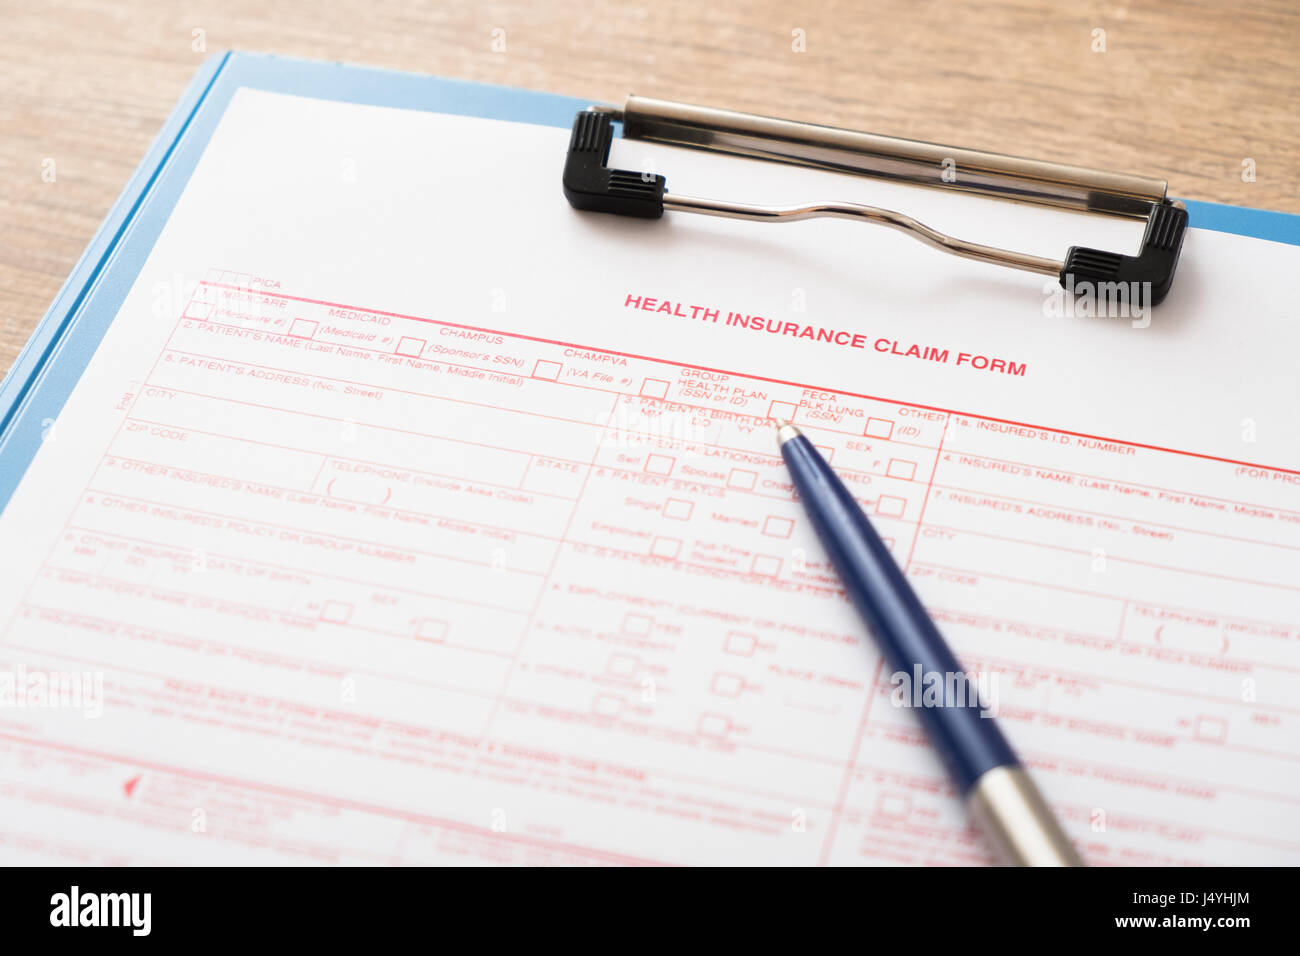 Health insurance claim form with pen - Stock Image